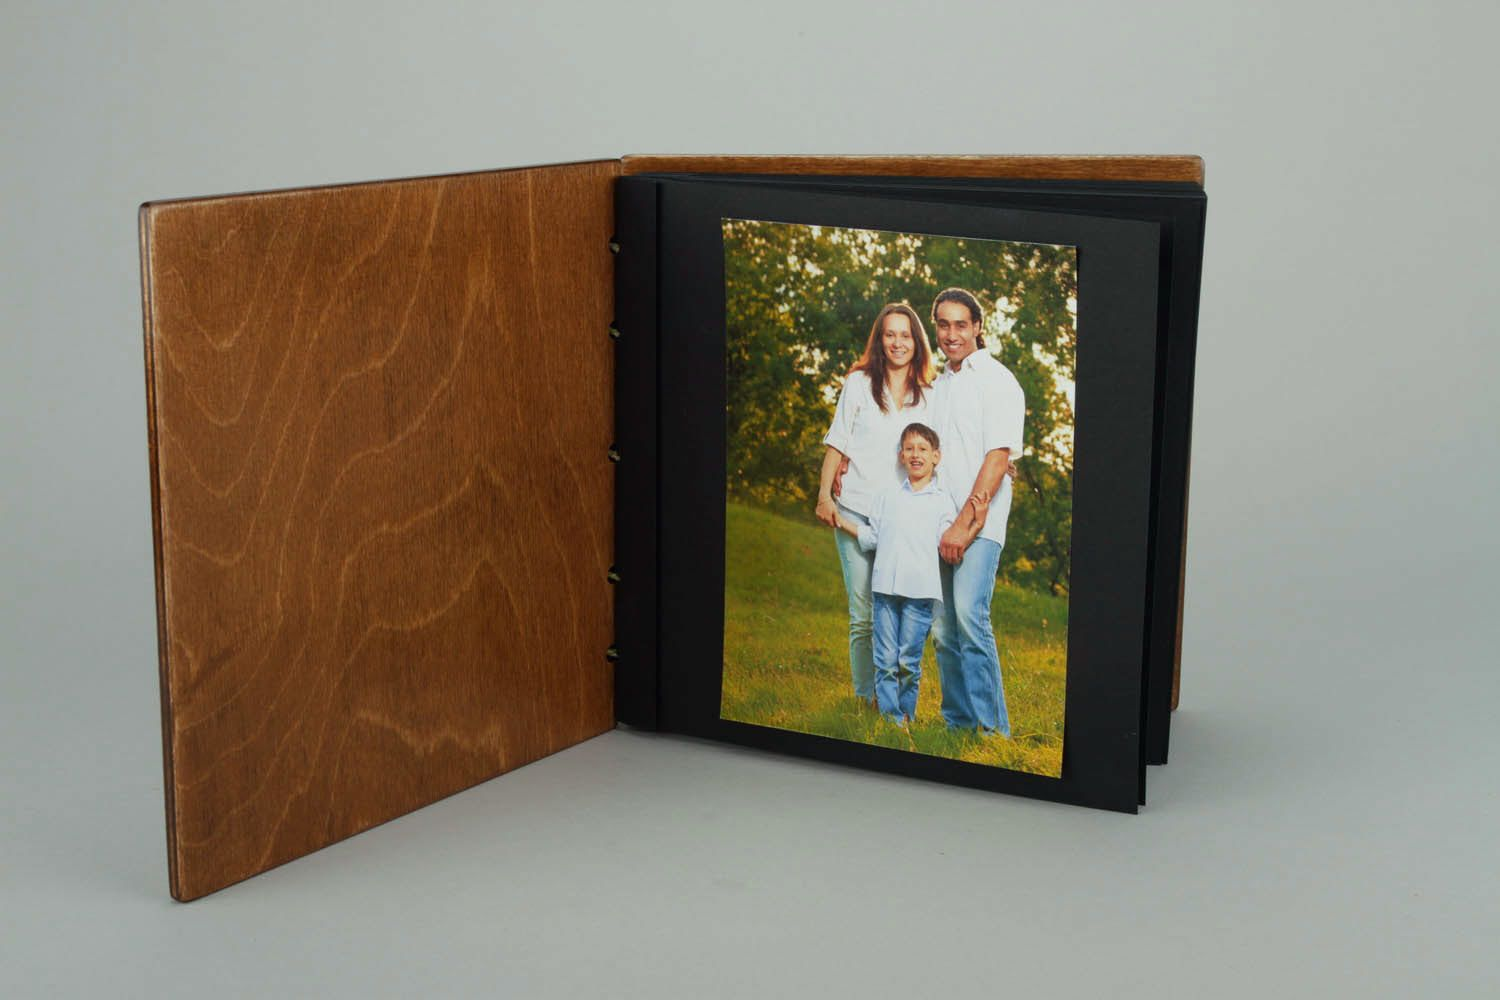 photo albums and photo frames Photo album made of wood and leather - MADEheart.com